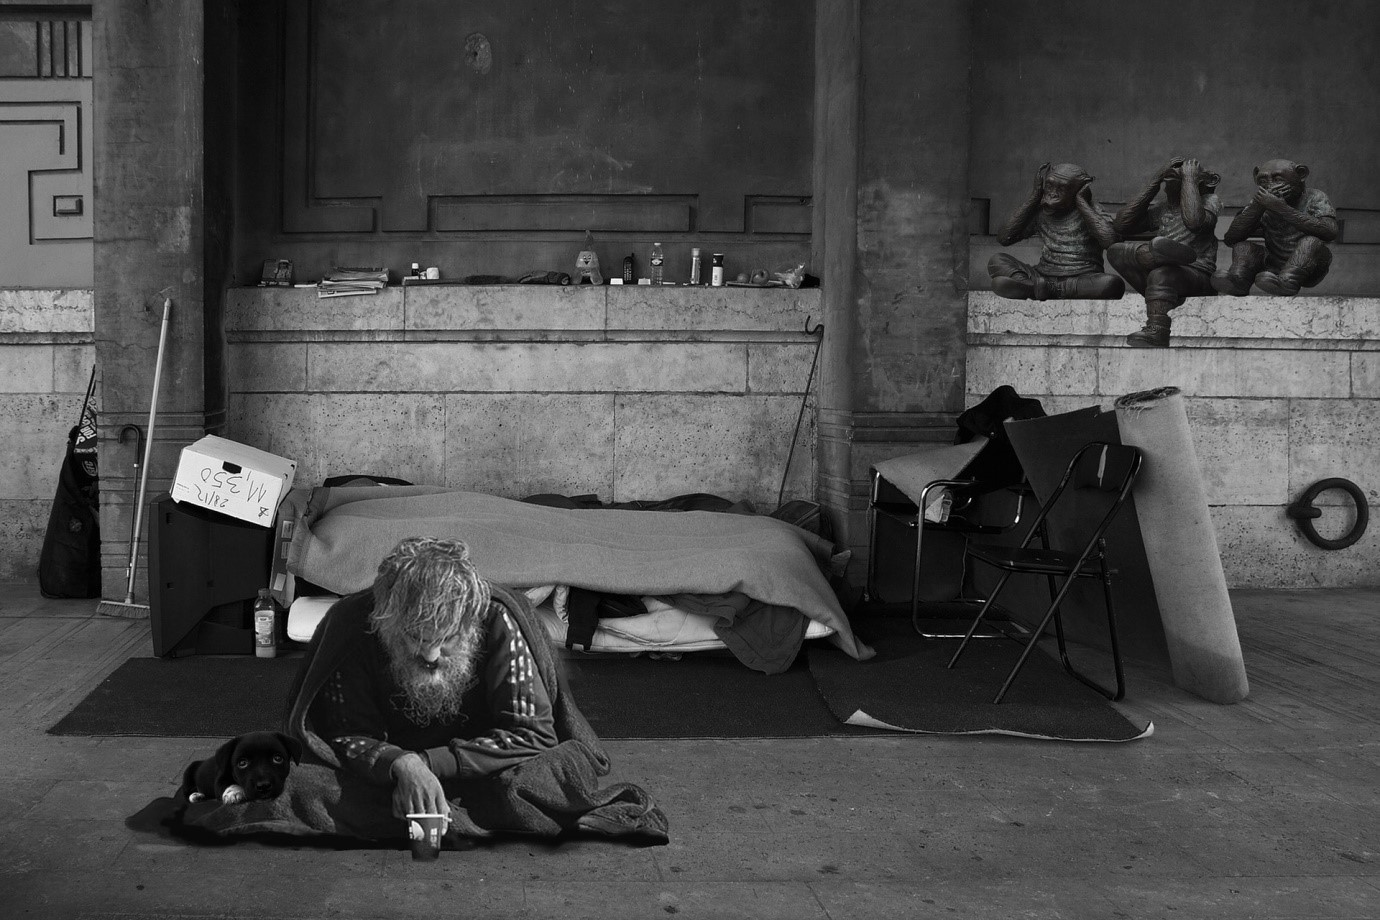 Sleeping Rough: How to Help the Homeless